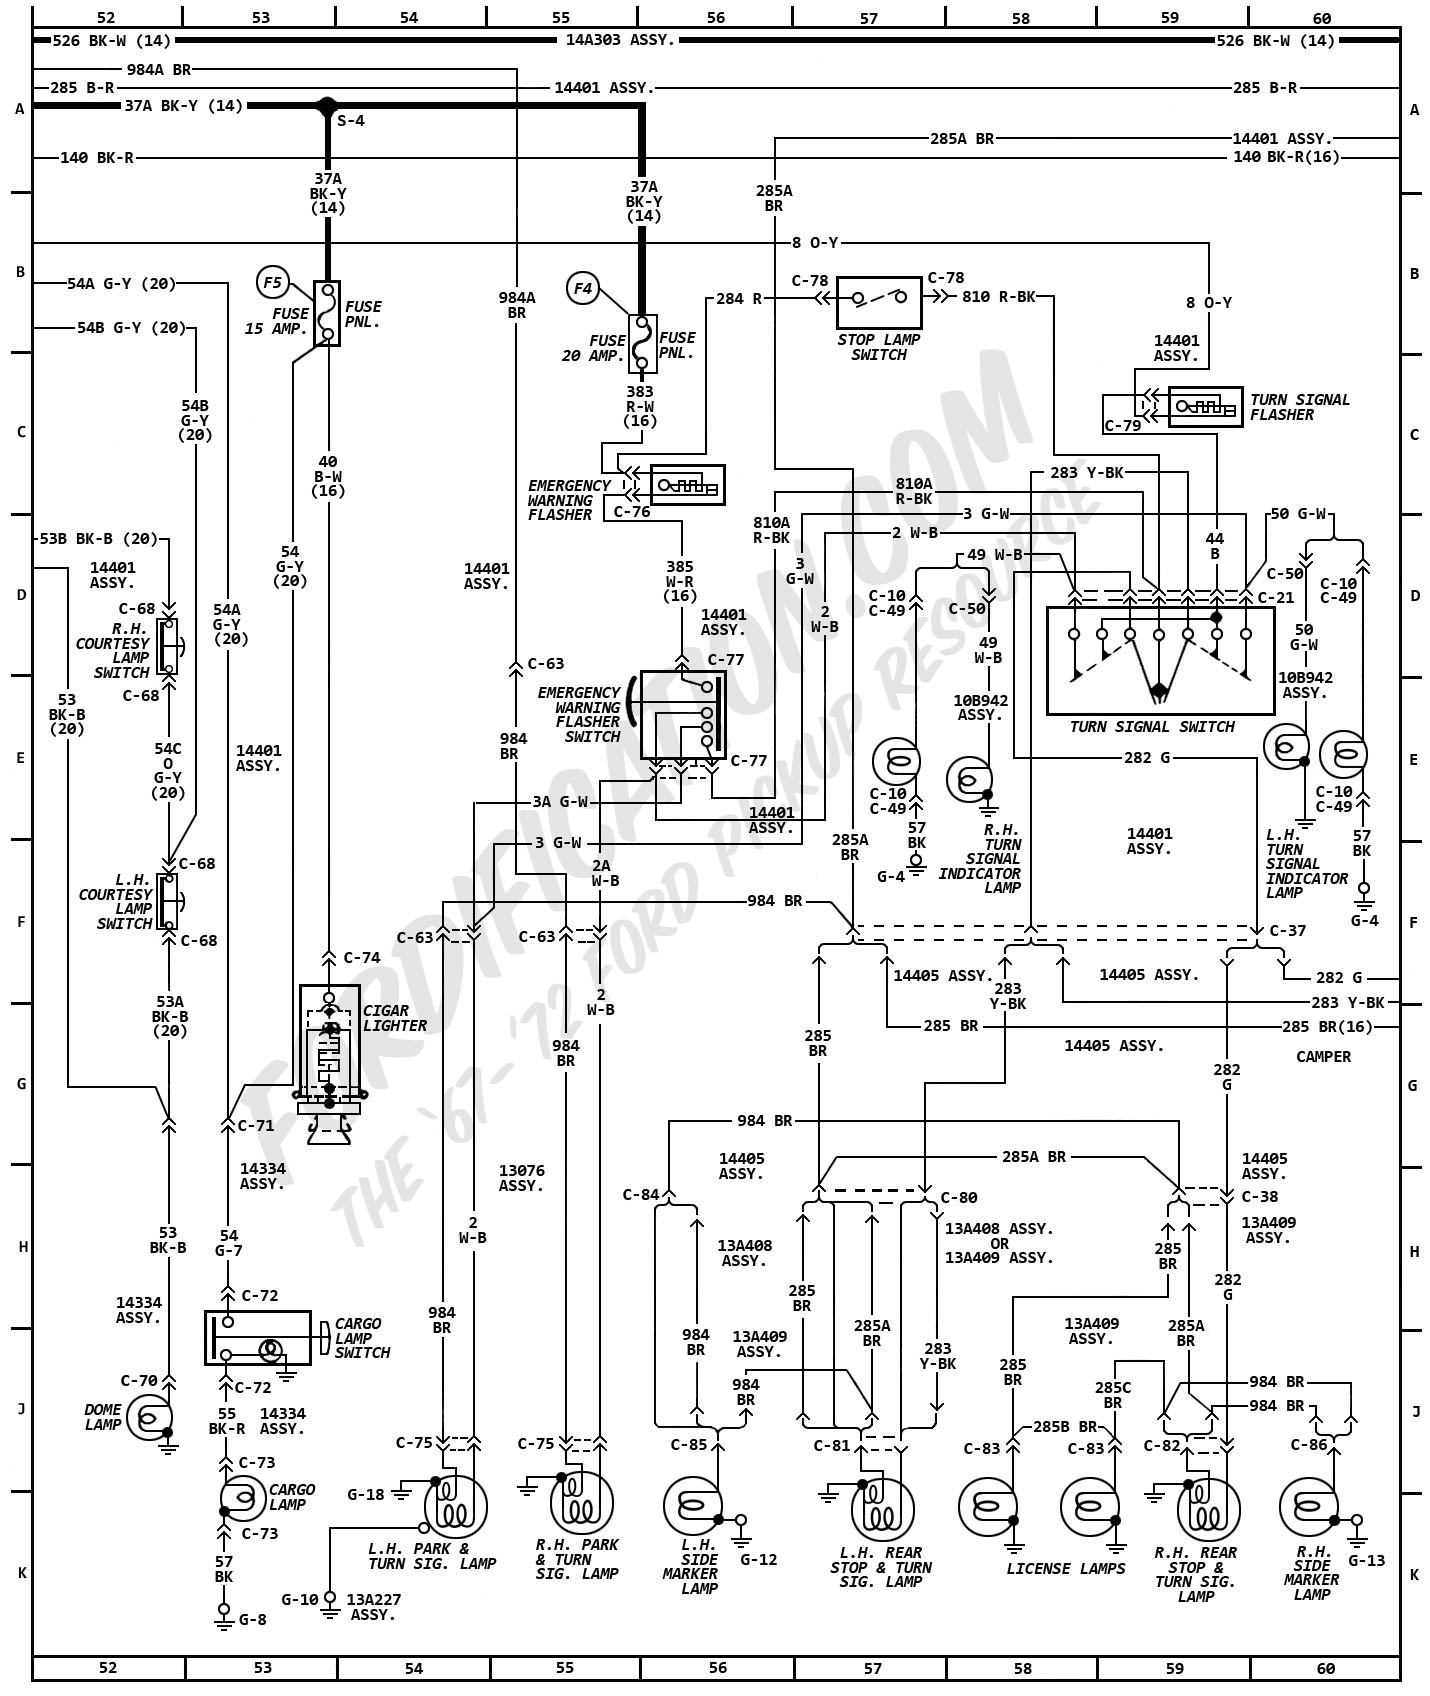 1970 ford ignition wiring wiring diagram todays1970 ford ignition wiring  wiring diagrams 1963 ford ignition wiring